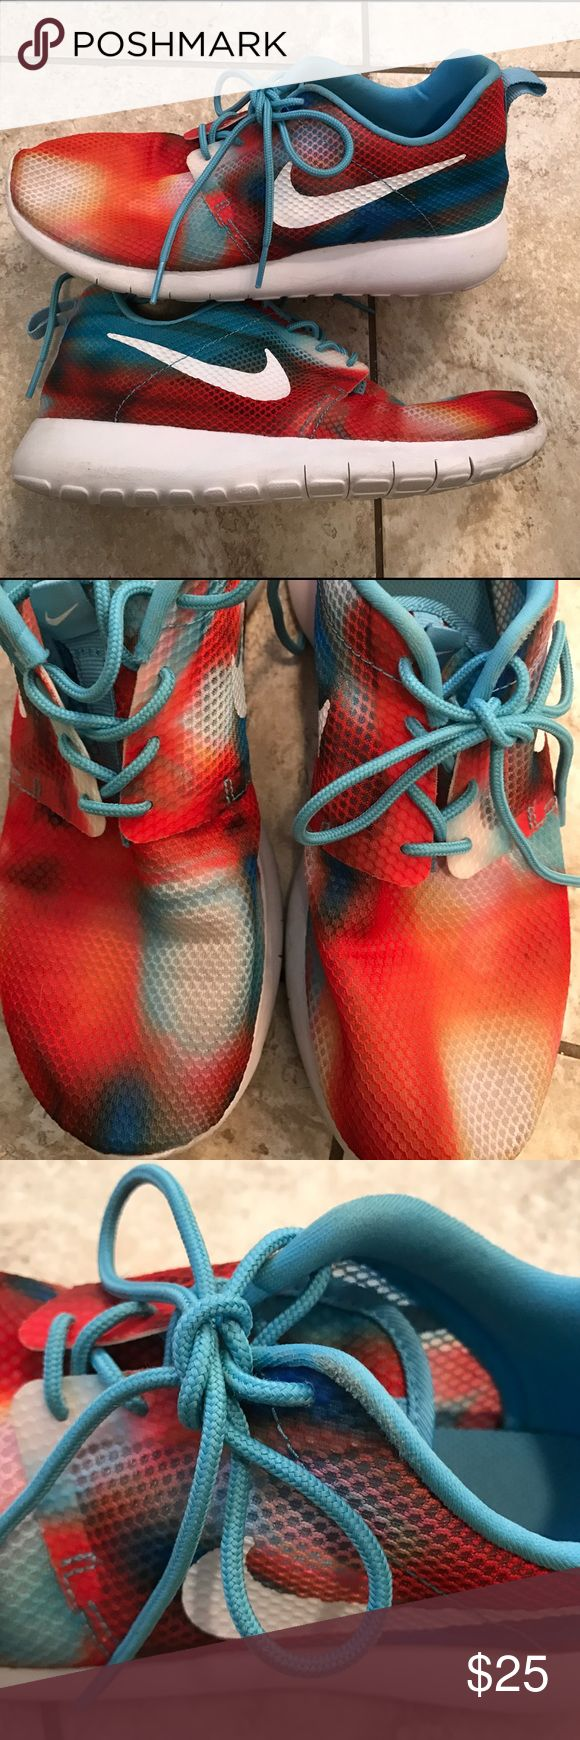 Nike Roshe Tie dye running shoes 5.5y woman's 7 Worn only a few times size 6.5 ladies 7 great shape! Nike Shoes Athletic Shoes